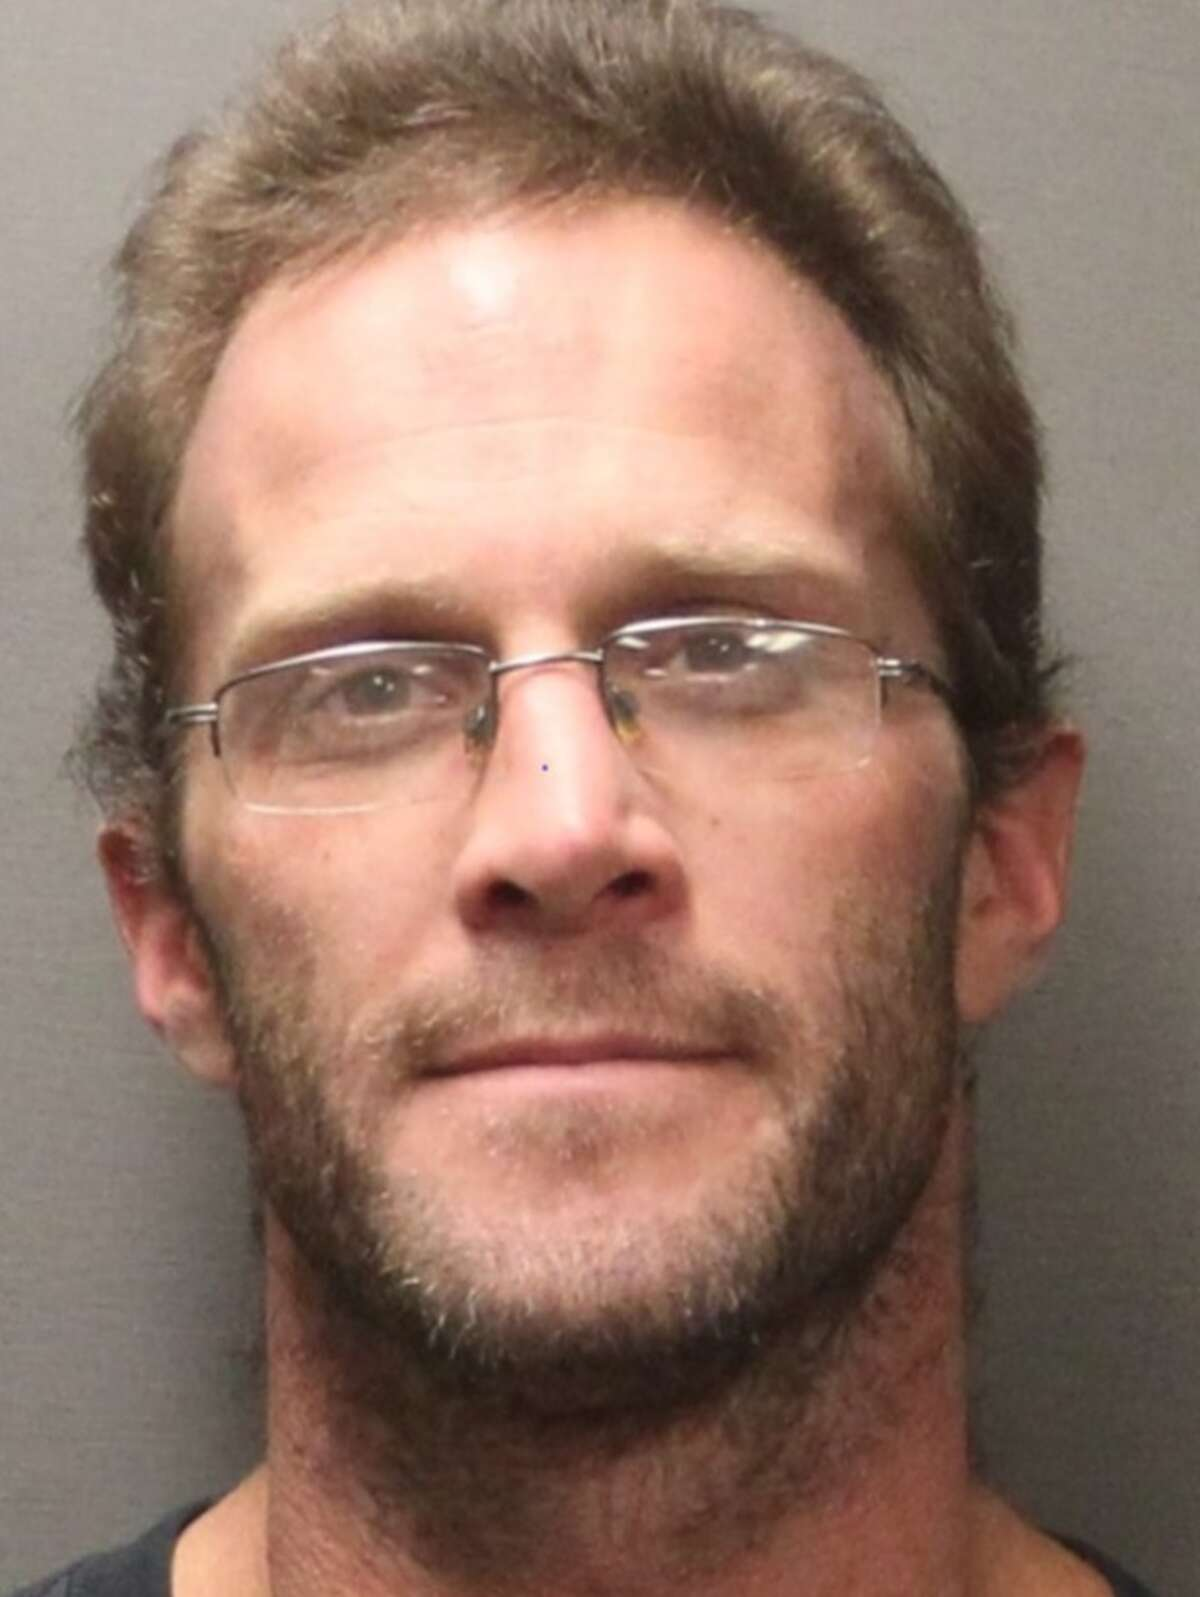 Michael E. Larock, 38, of Ticonderoga, is a convicted felon wanted in connection with a murder after the victim's dead body was found in Ticonderoga on Friday Dec. 14, 2018.